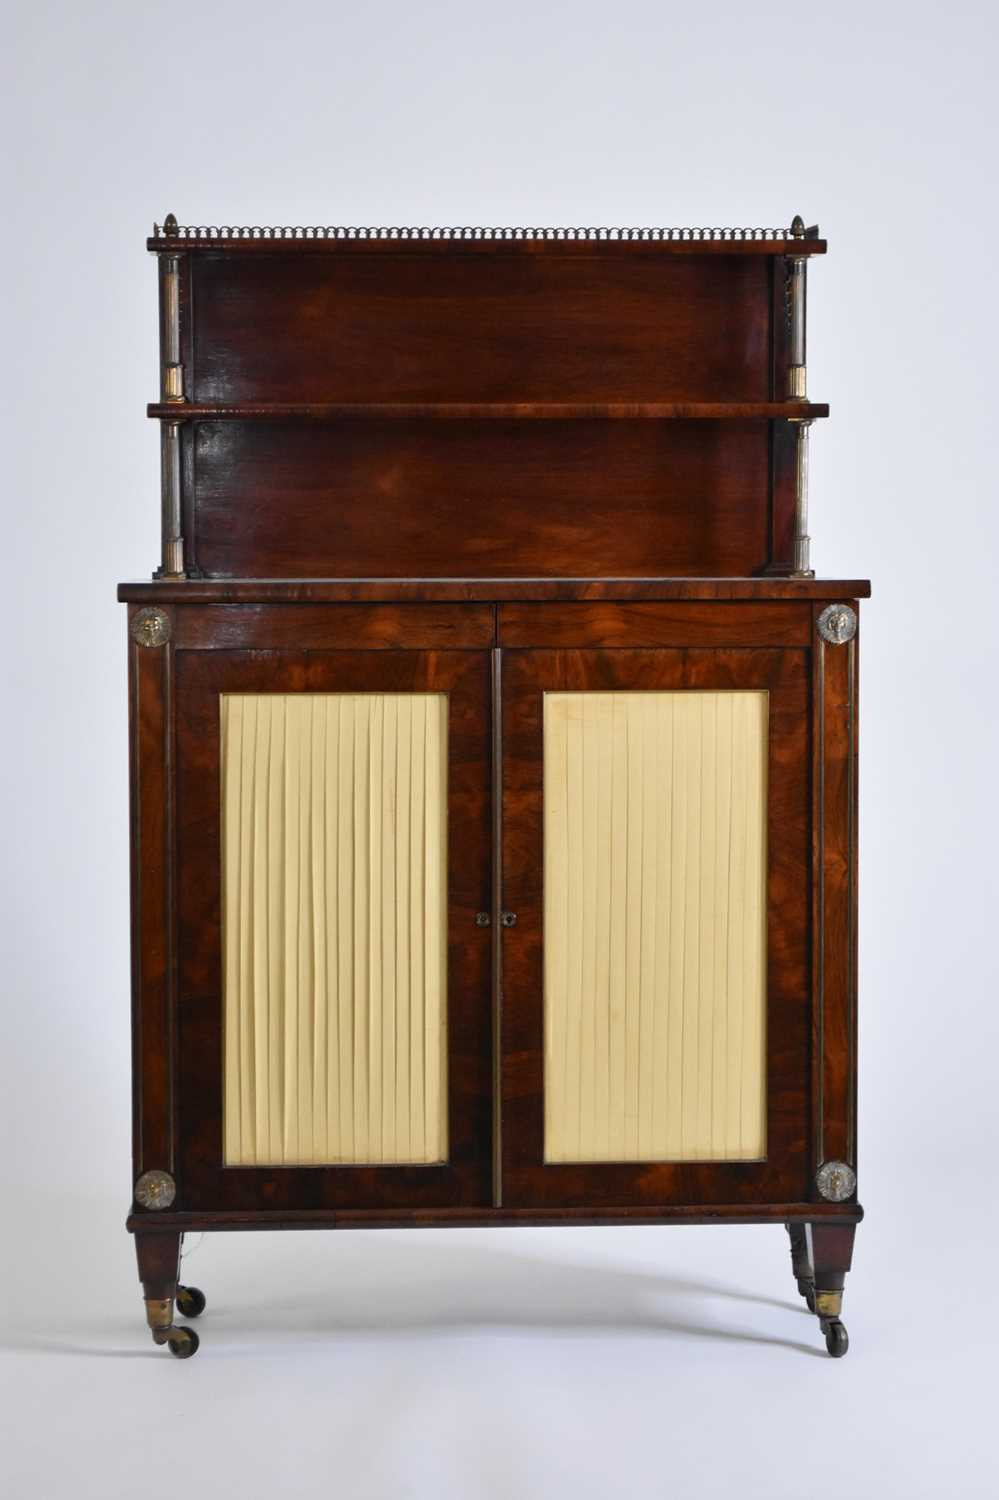 An early 19th century rosewood veneered bookcase